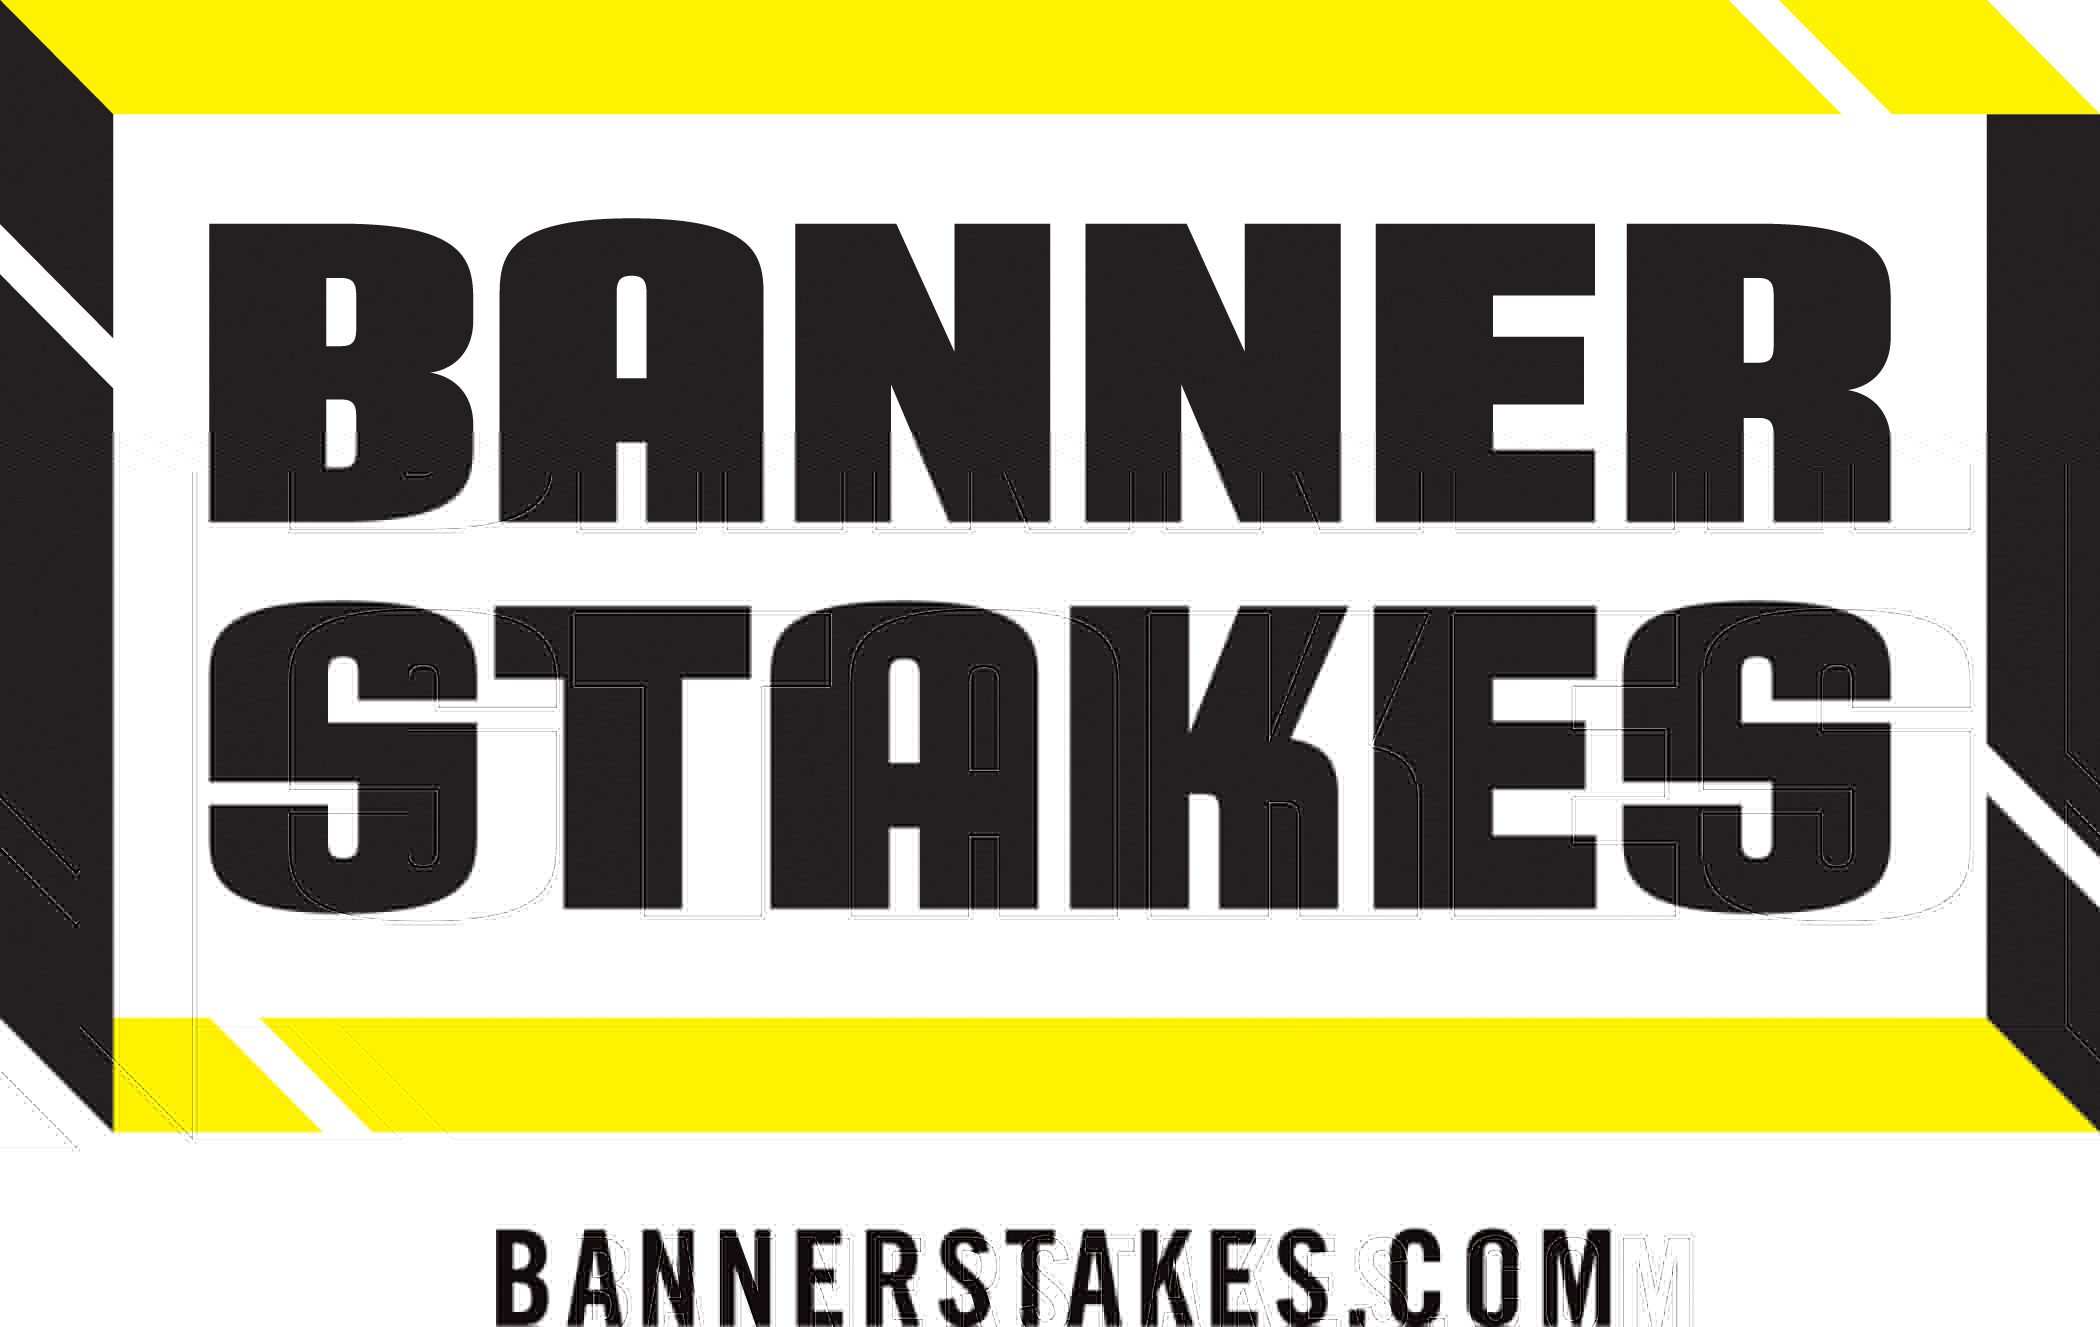 Banner-Stakes-yellow-black-logo-website